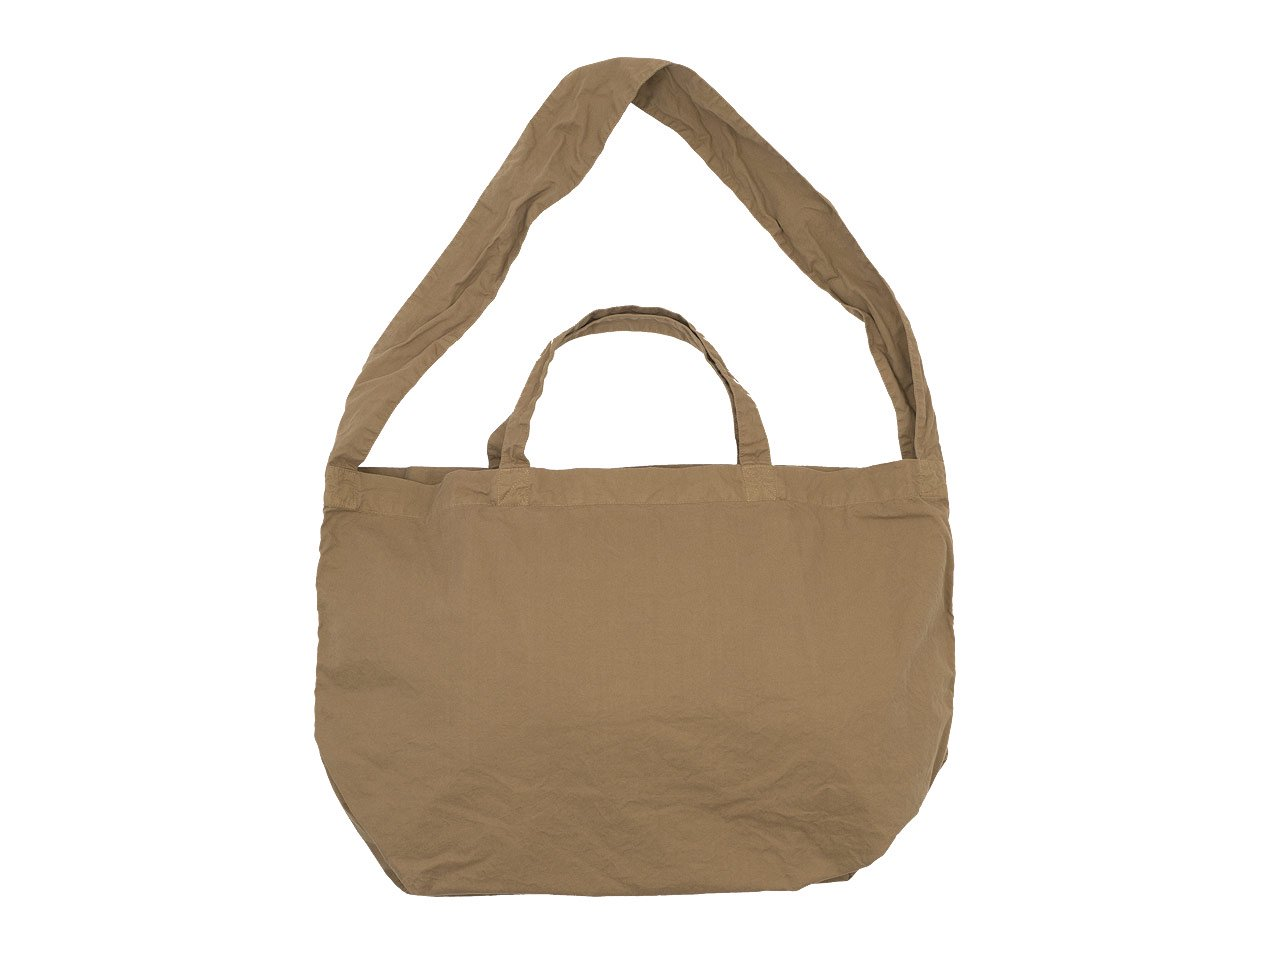 TOUJOURS Shoulder Tote Bag DUSTY BROWN【TM32AA04】